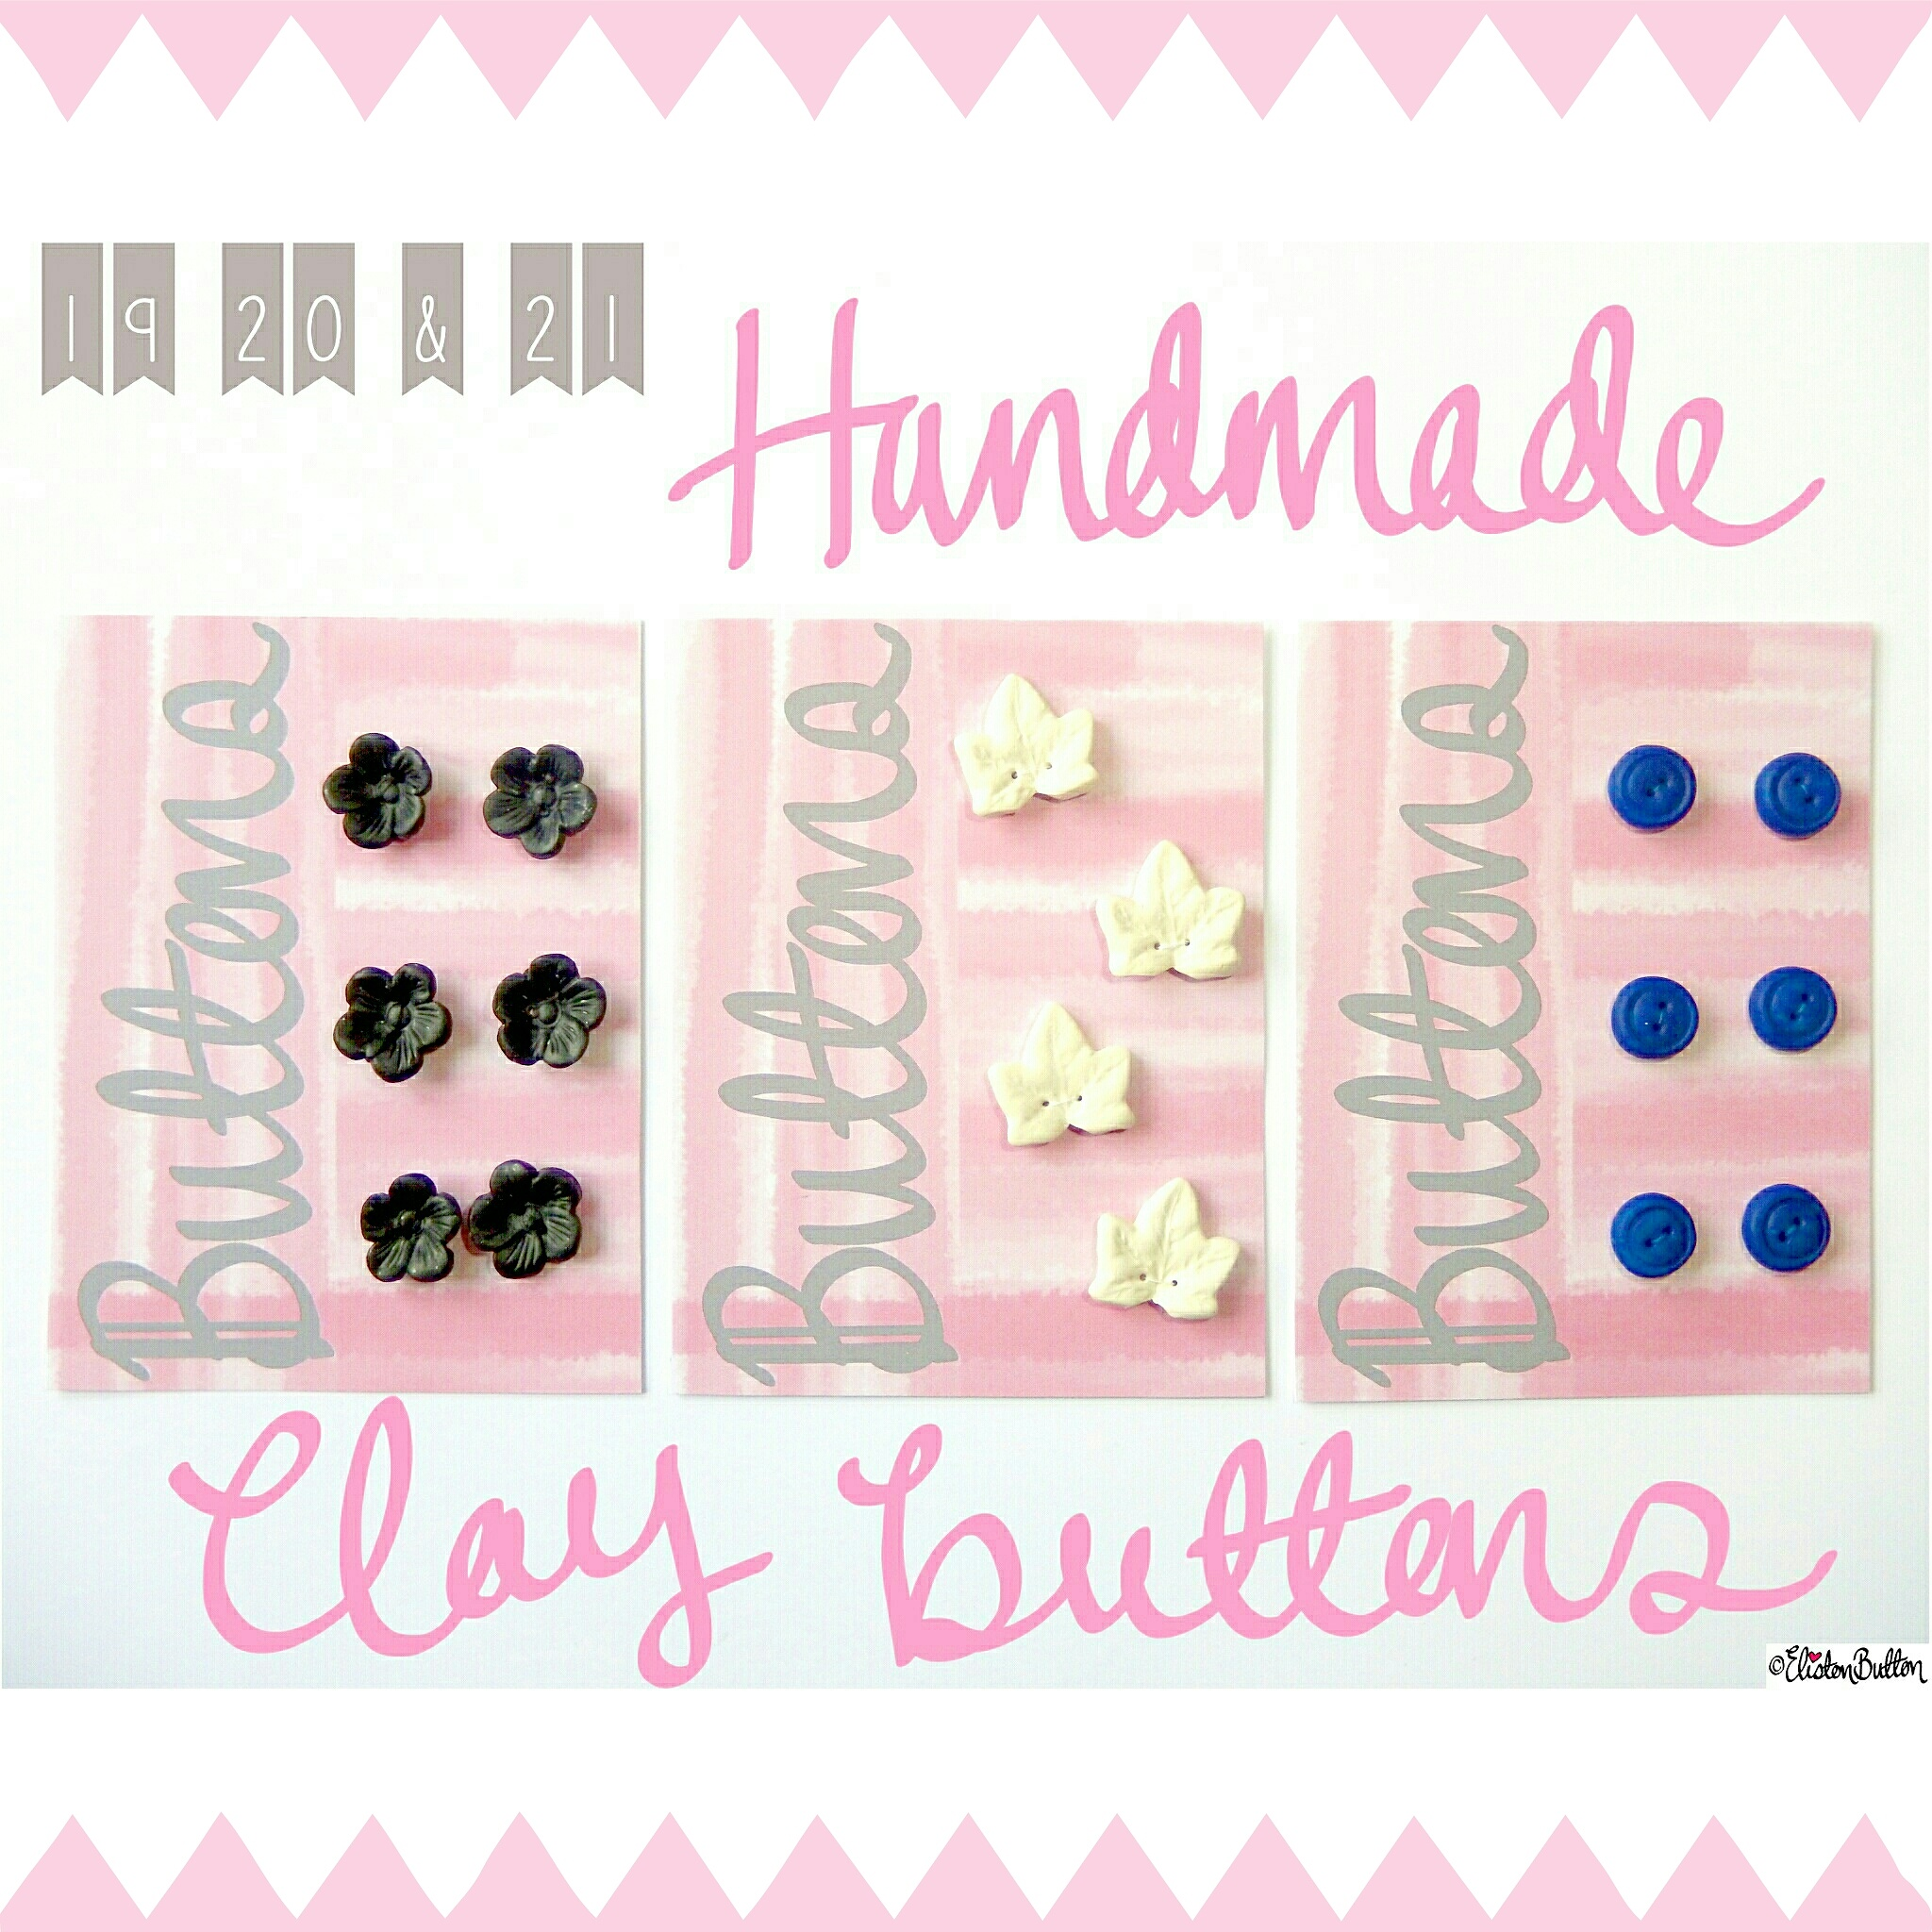 Handmade Clay Buttons - Create 28 - I Did It! (a.k.a. My Therapy Session) at www.elistonbutton.com - Eliston Button - That Crafty Kid – Art, Design, Craft & Adventure.